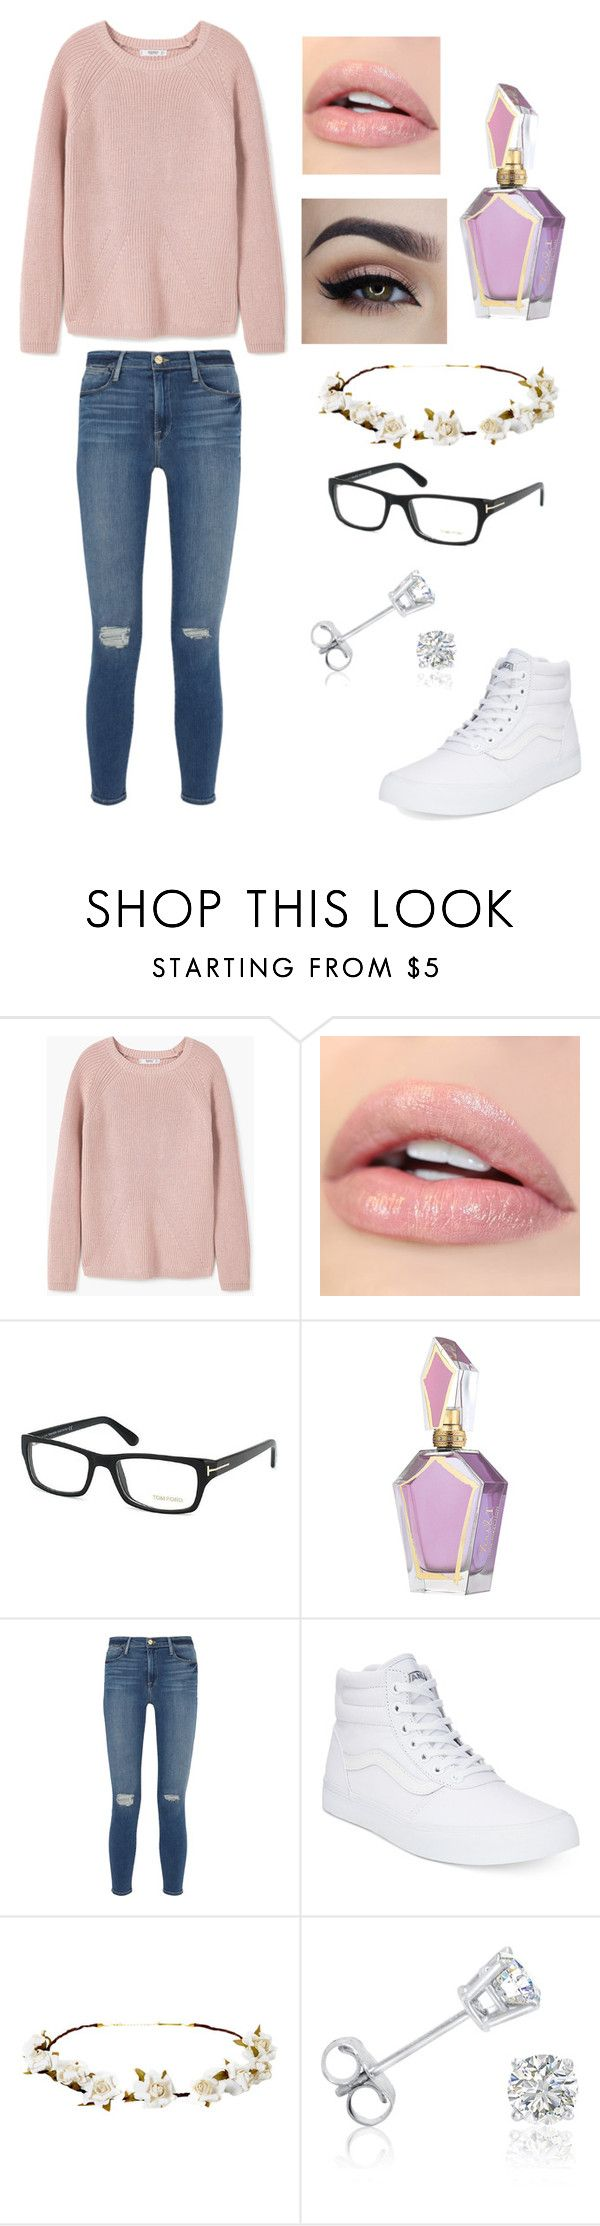 """""""my answer is you"""" by marineglass ❤ liked on Polyvore featuring MANGO, Tom Ford, Frame Denim, Vans, Cult Gaia and Amanda Rose Collection"""